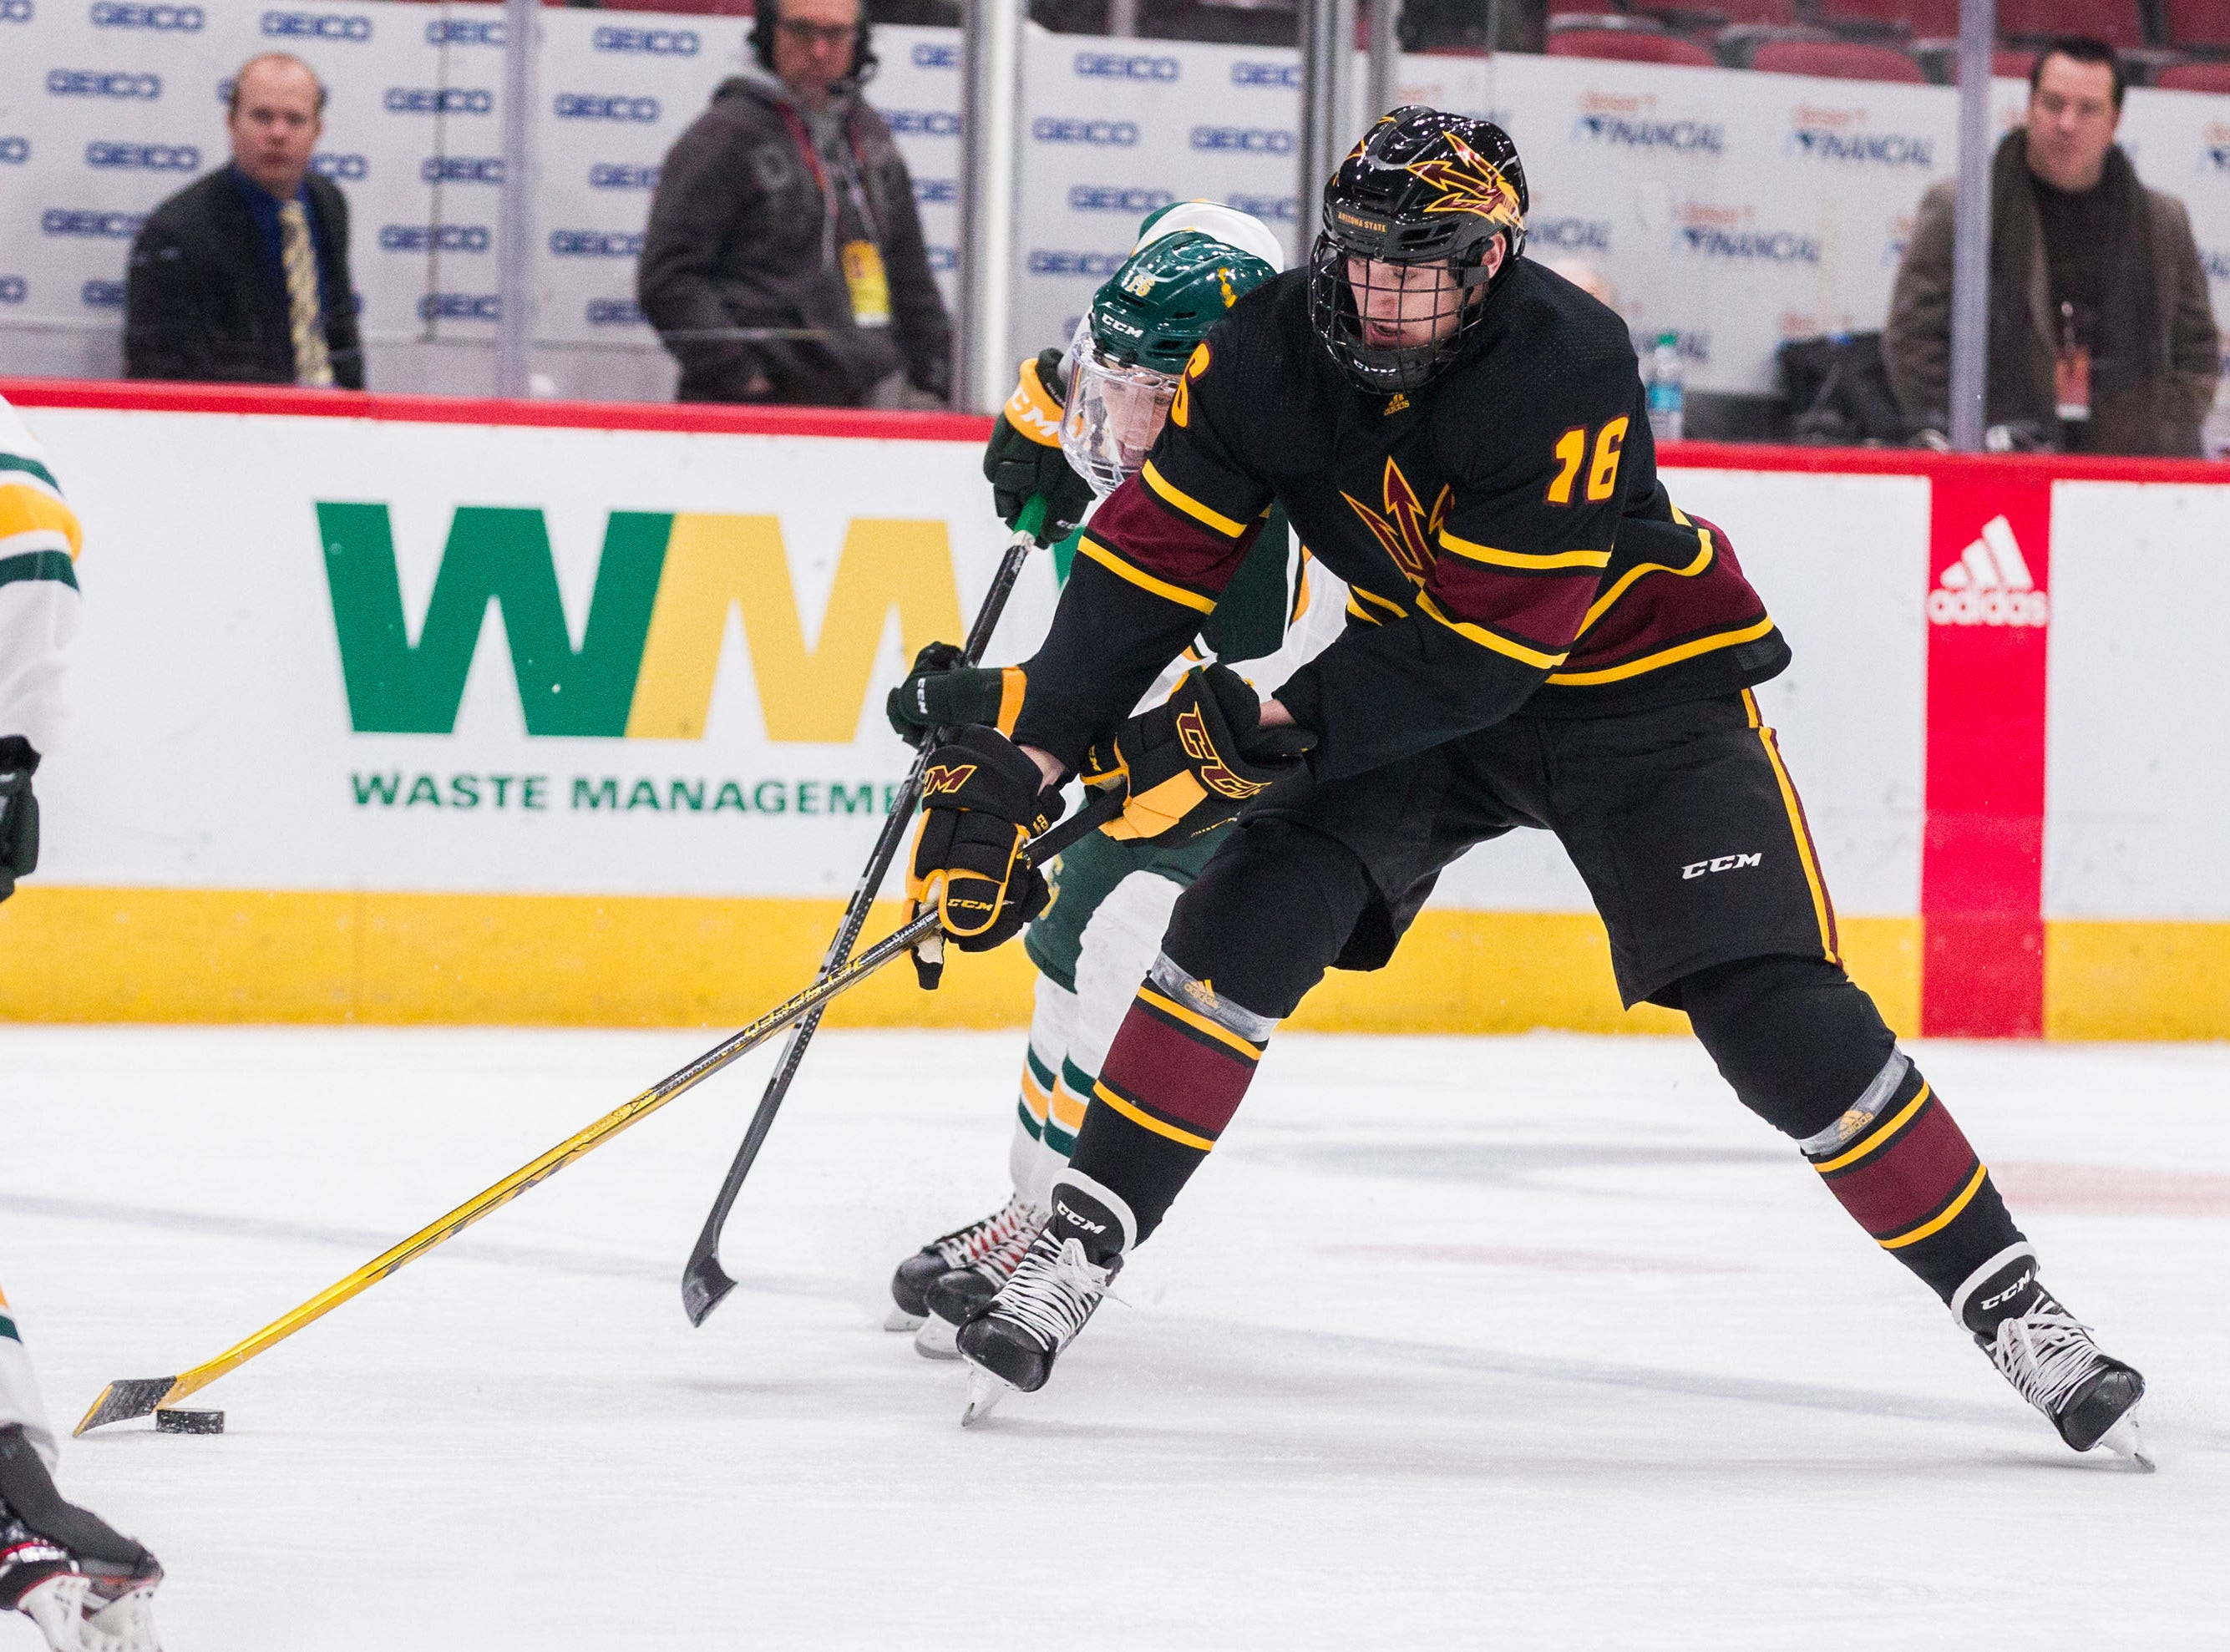 Arizona State University's Max Balinson (26) controls the puck against Clarkson's Jack Jacome (16) during the second period of their game in the 2018 Desert Hockey Classic in Glendale, Friday, Dec. 28, 2018.